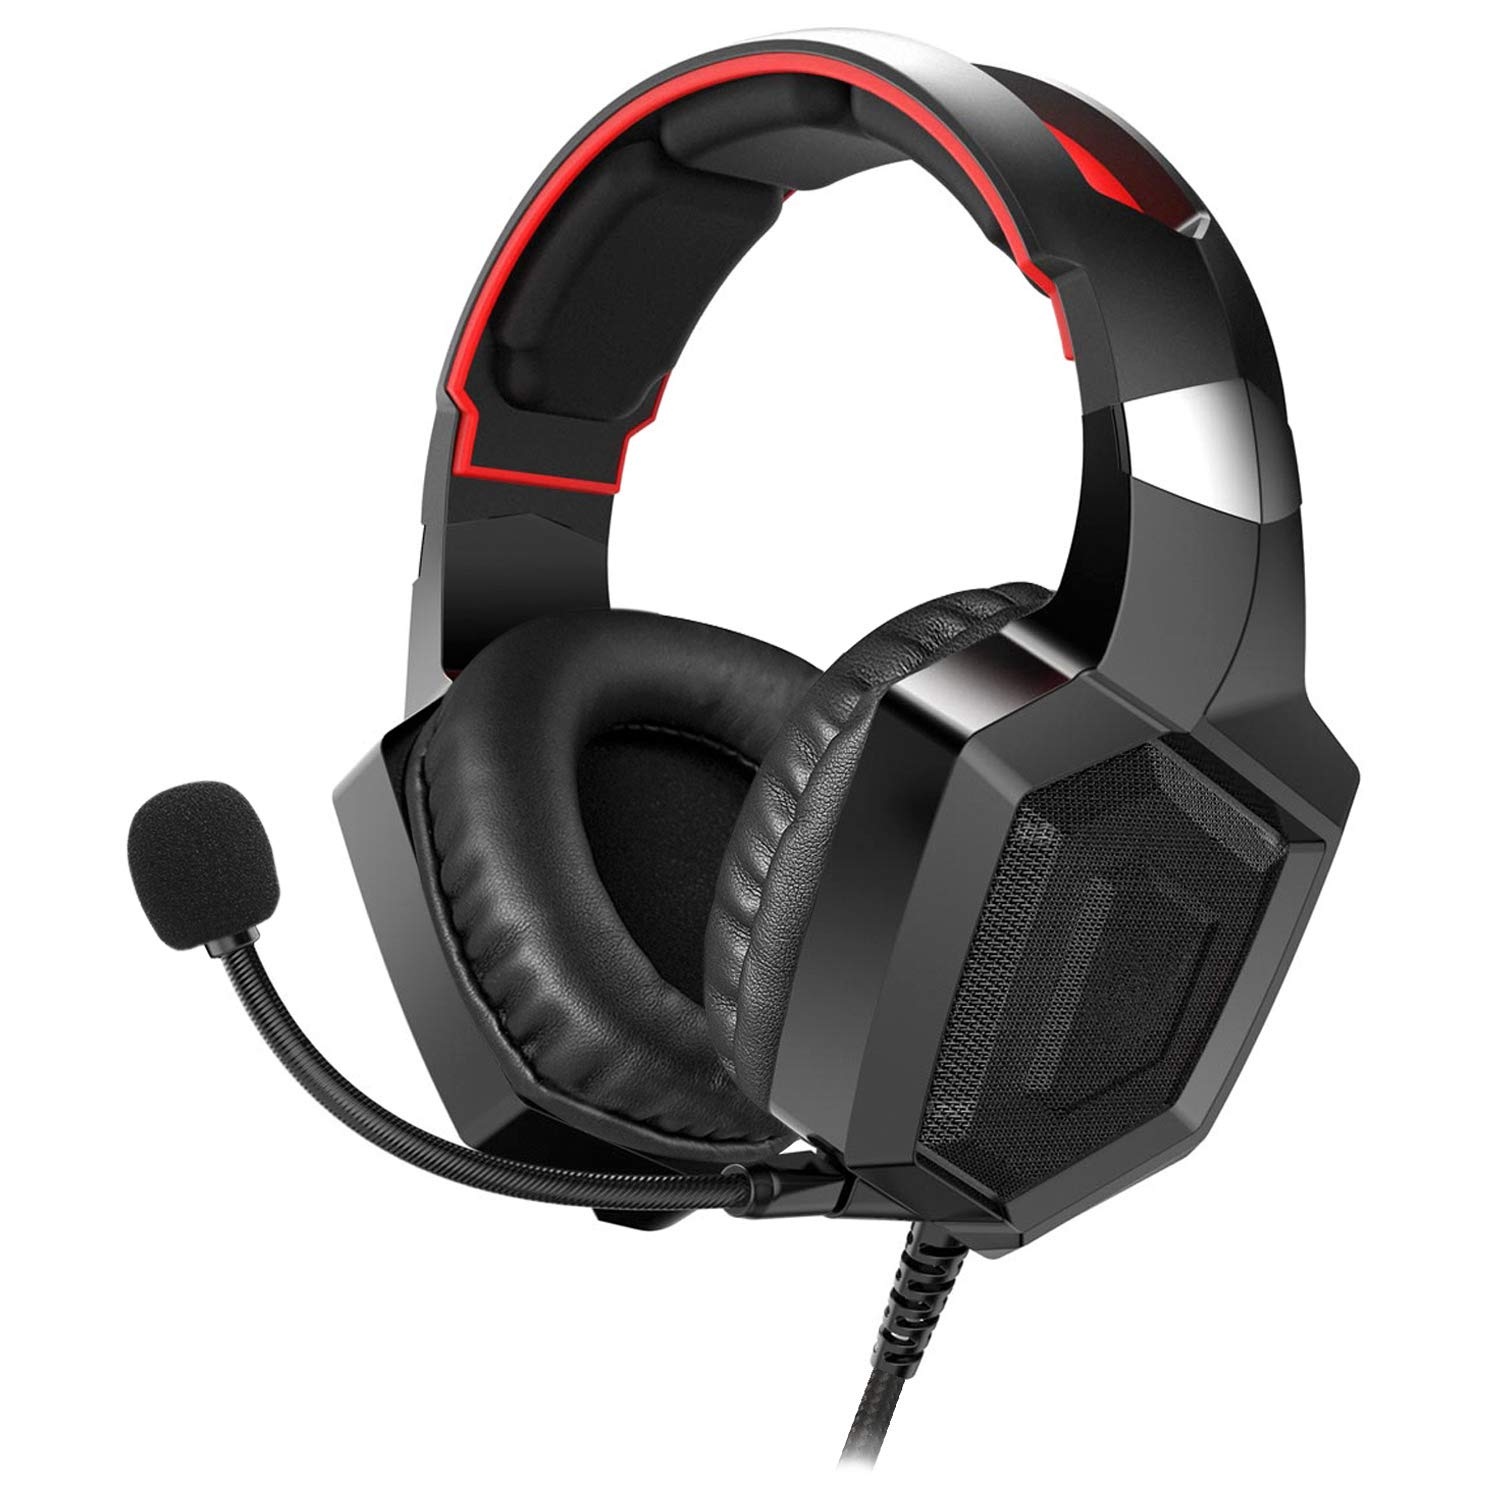 Amerzam Gaming Headset with Stereo Surround Sound, LED Lighting & Noise Canceling Microphone for PS4, Xbox One (Adapter Needed), Nintendo Switch (Audio) etc. (Red) (Red)